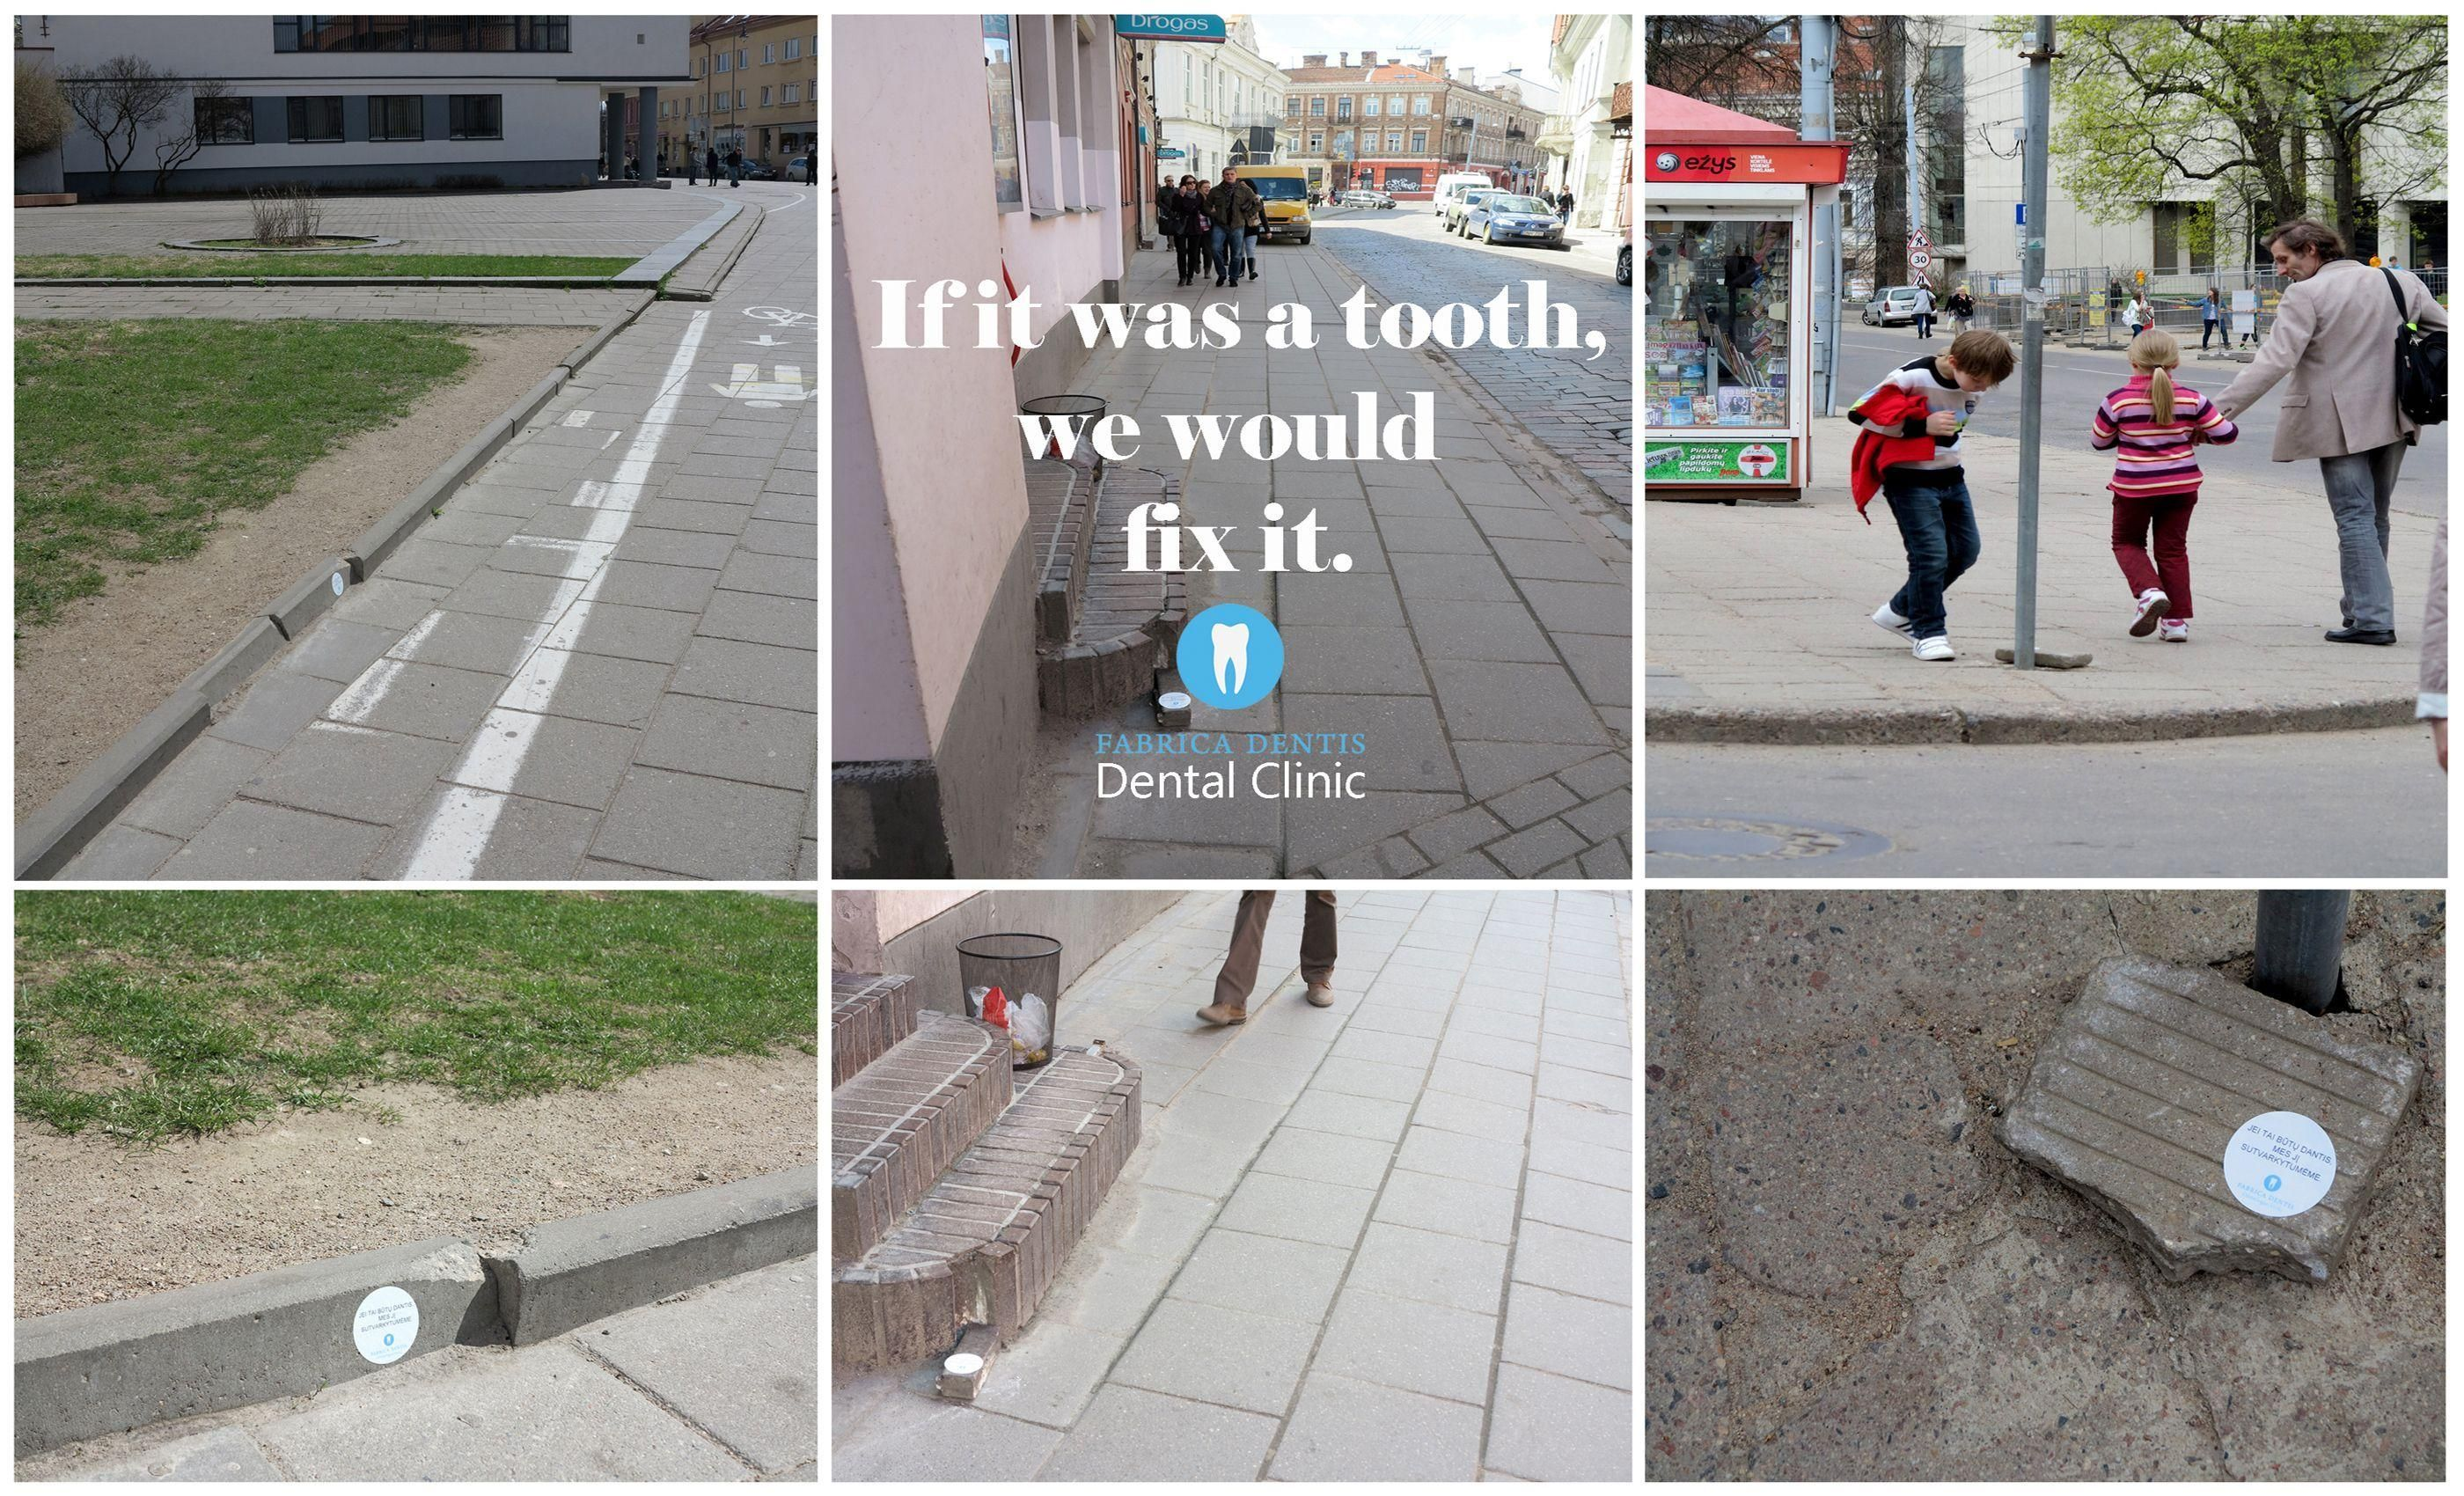 Clever Guerrilla Marketing from Dental Clinic